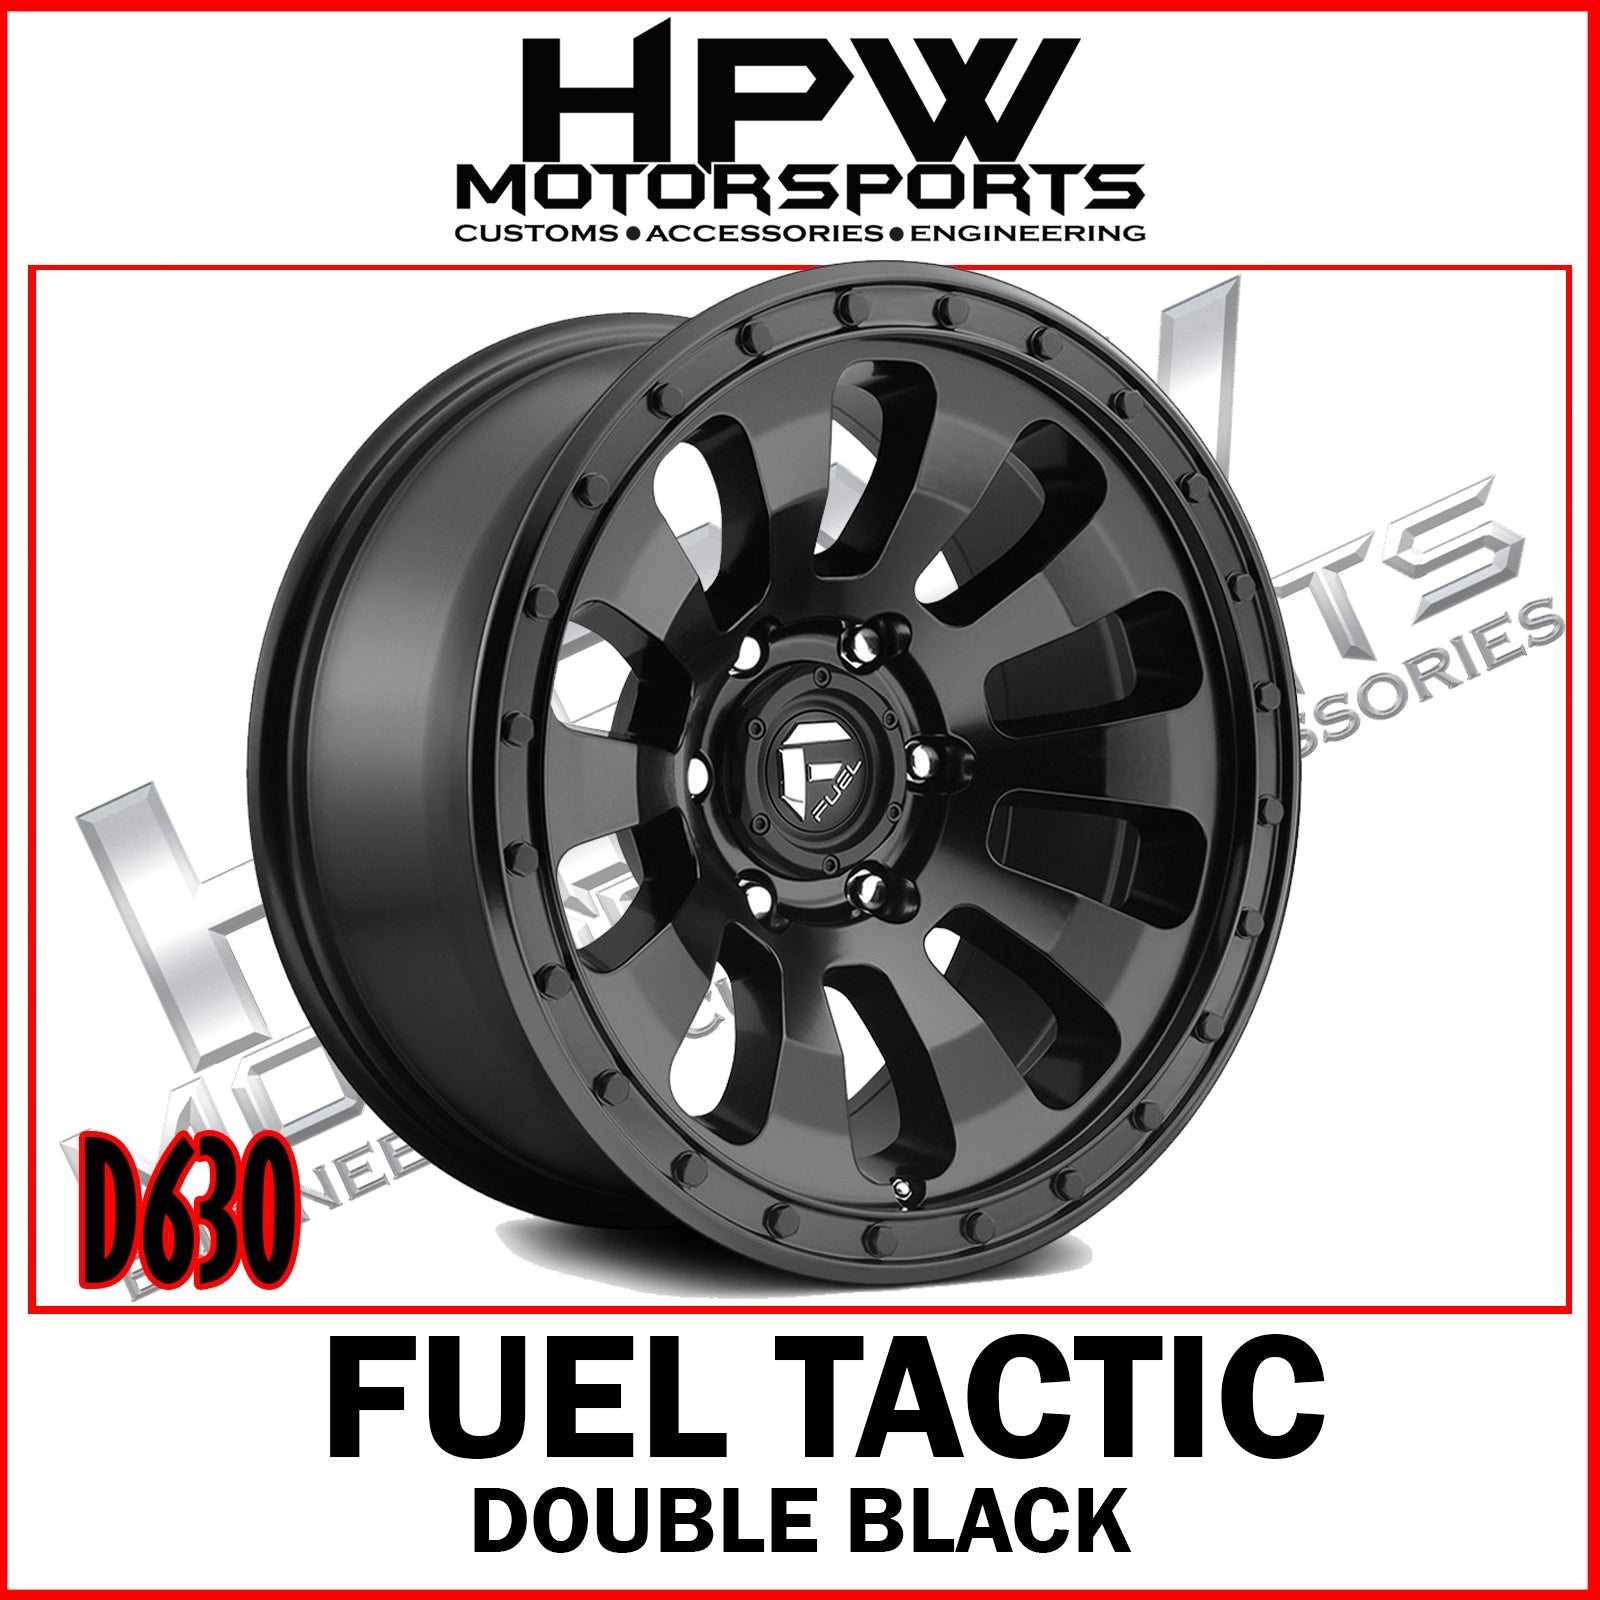 D630 FUEL TACTIC - DOUBLE BLACK - Set of 4